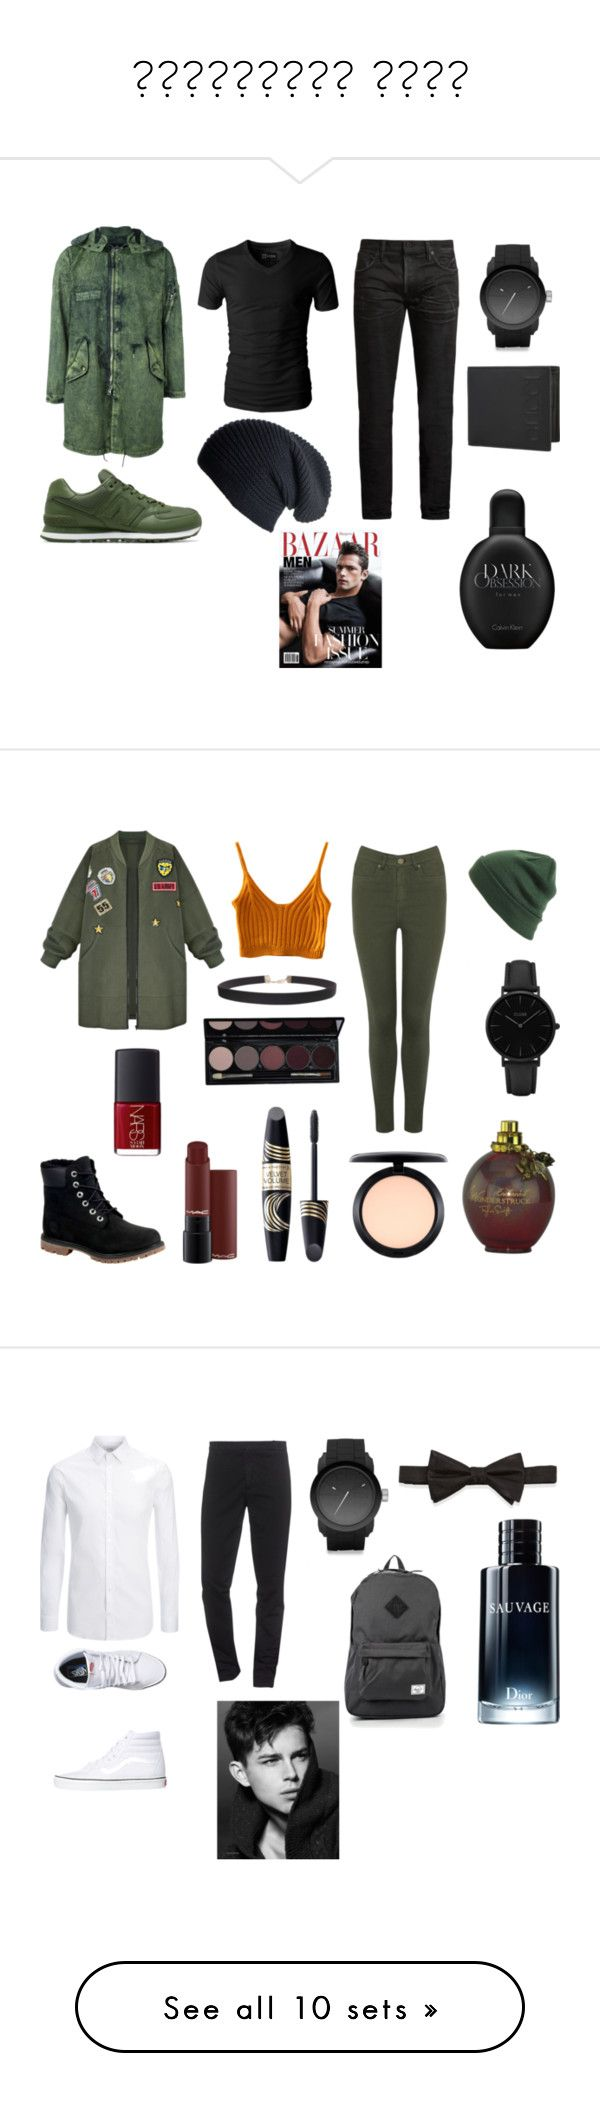 """ИДЕАЛЬНАЯ ПАРА"" by reduska on Polyvore featuring stone island shadow project, MasterCraft Union, New Balance, Diesel, Gucci, Black, Calvin Klein, men's fashion, menswear и мода"